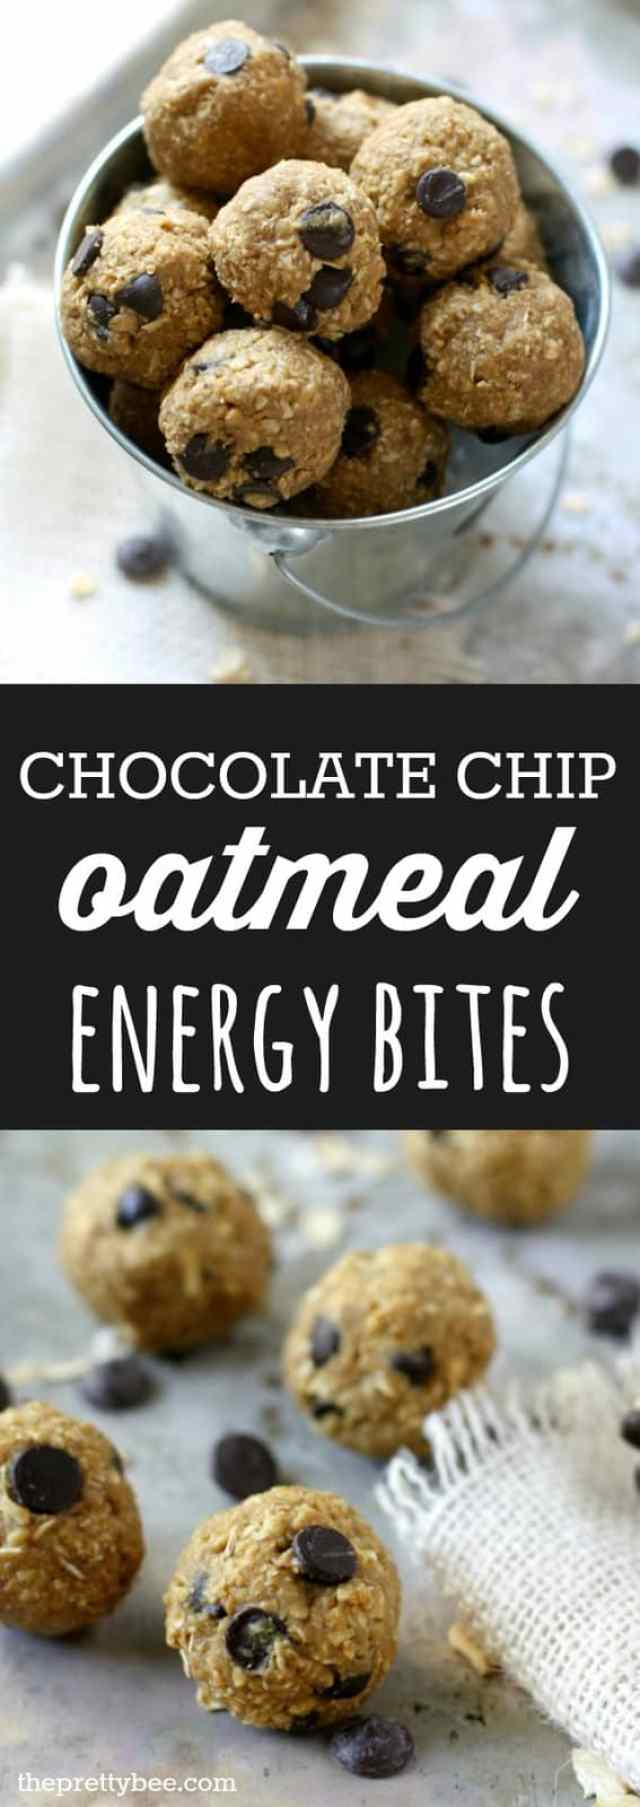 These no-bake chocolate chip oatmeal energy bites are a quick and delicious snack! Perfect for school lunches.